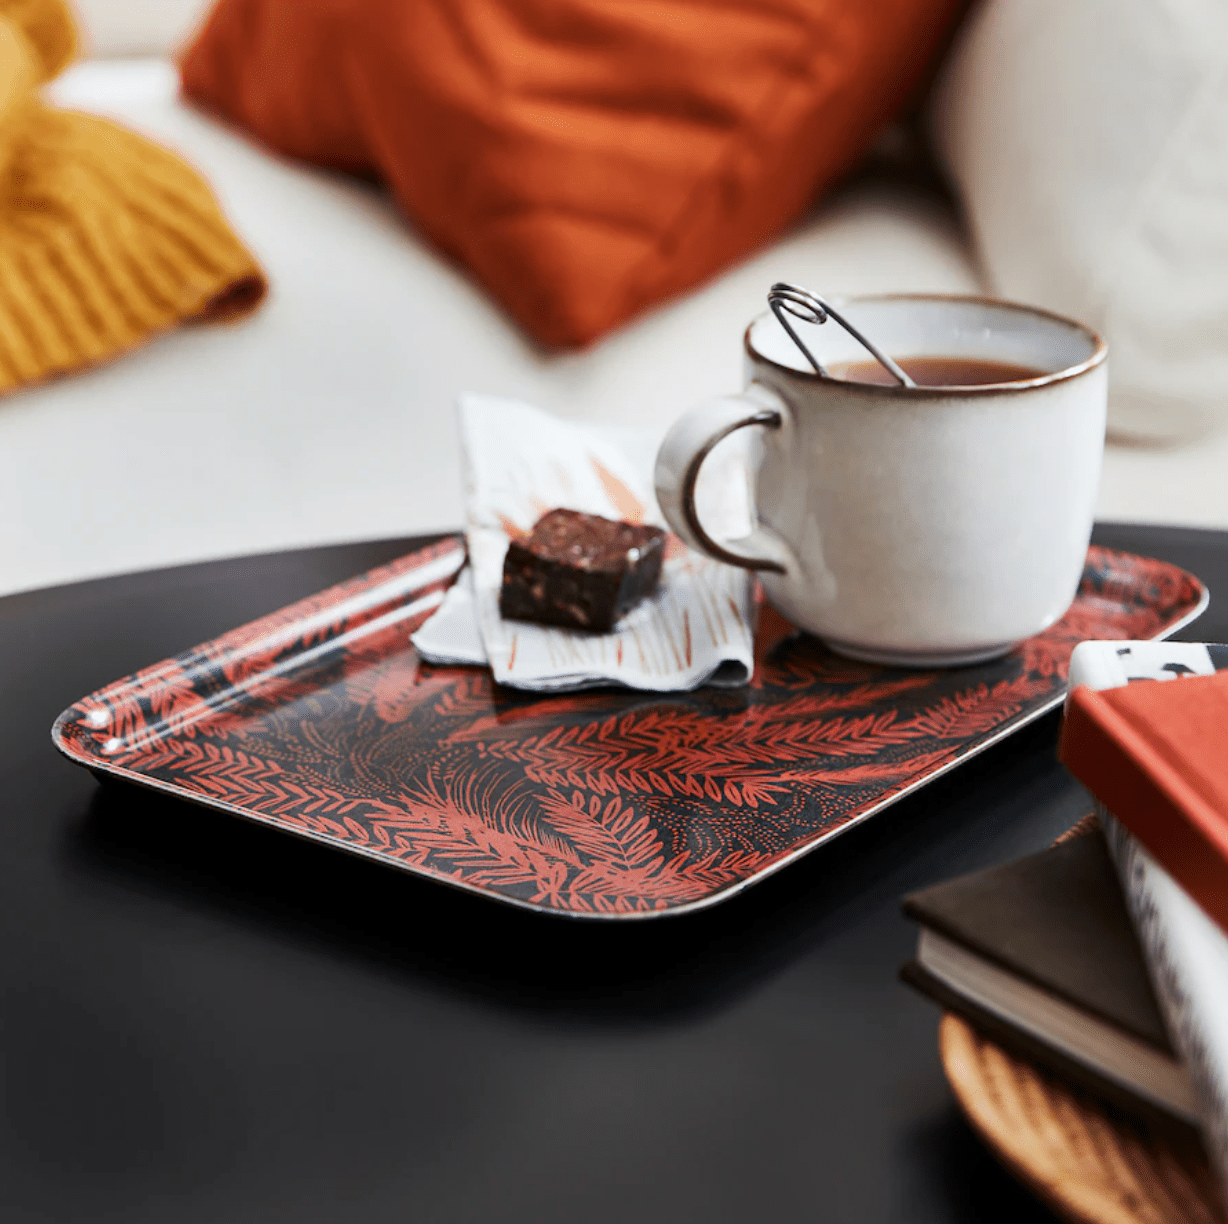 A food serving tray with red and black leaf pattern